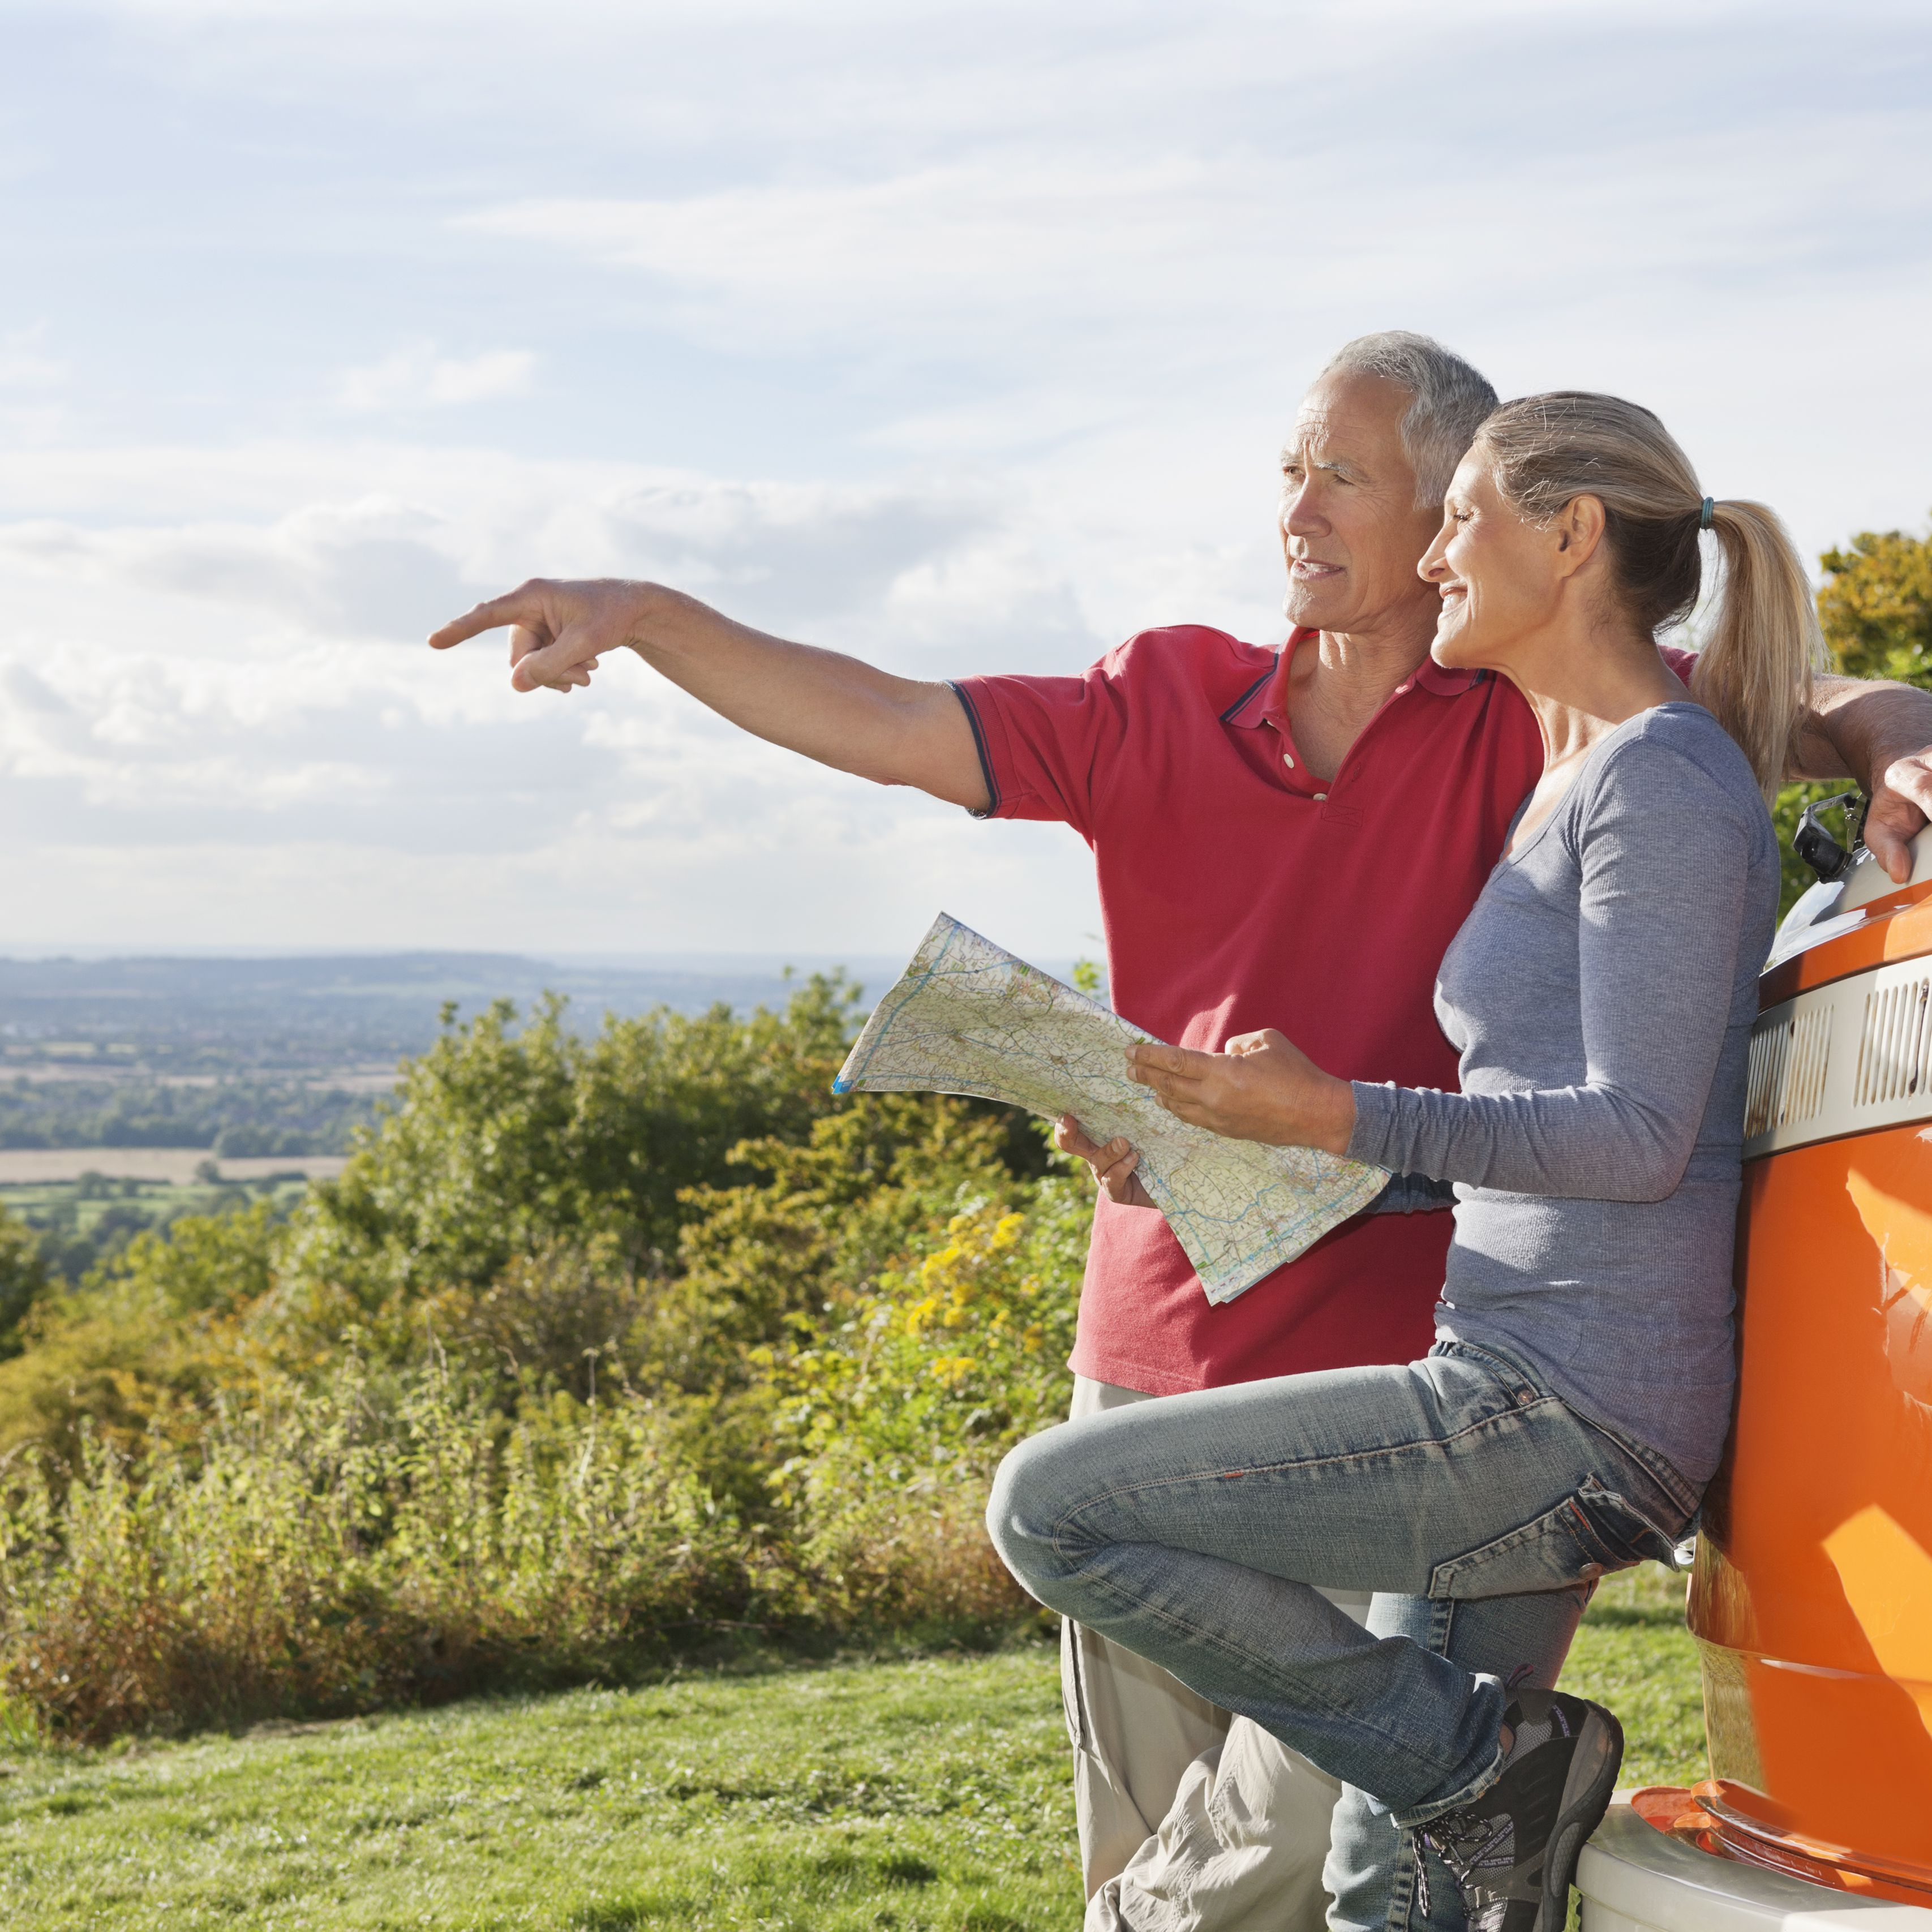 Plan for Retirement Based on Lifestyle, Not Current Income